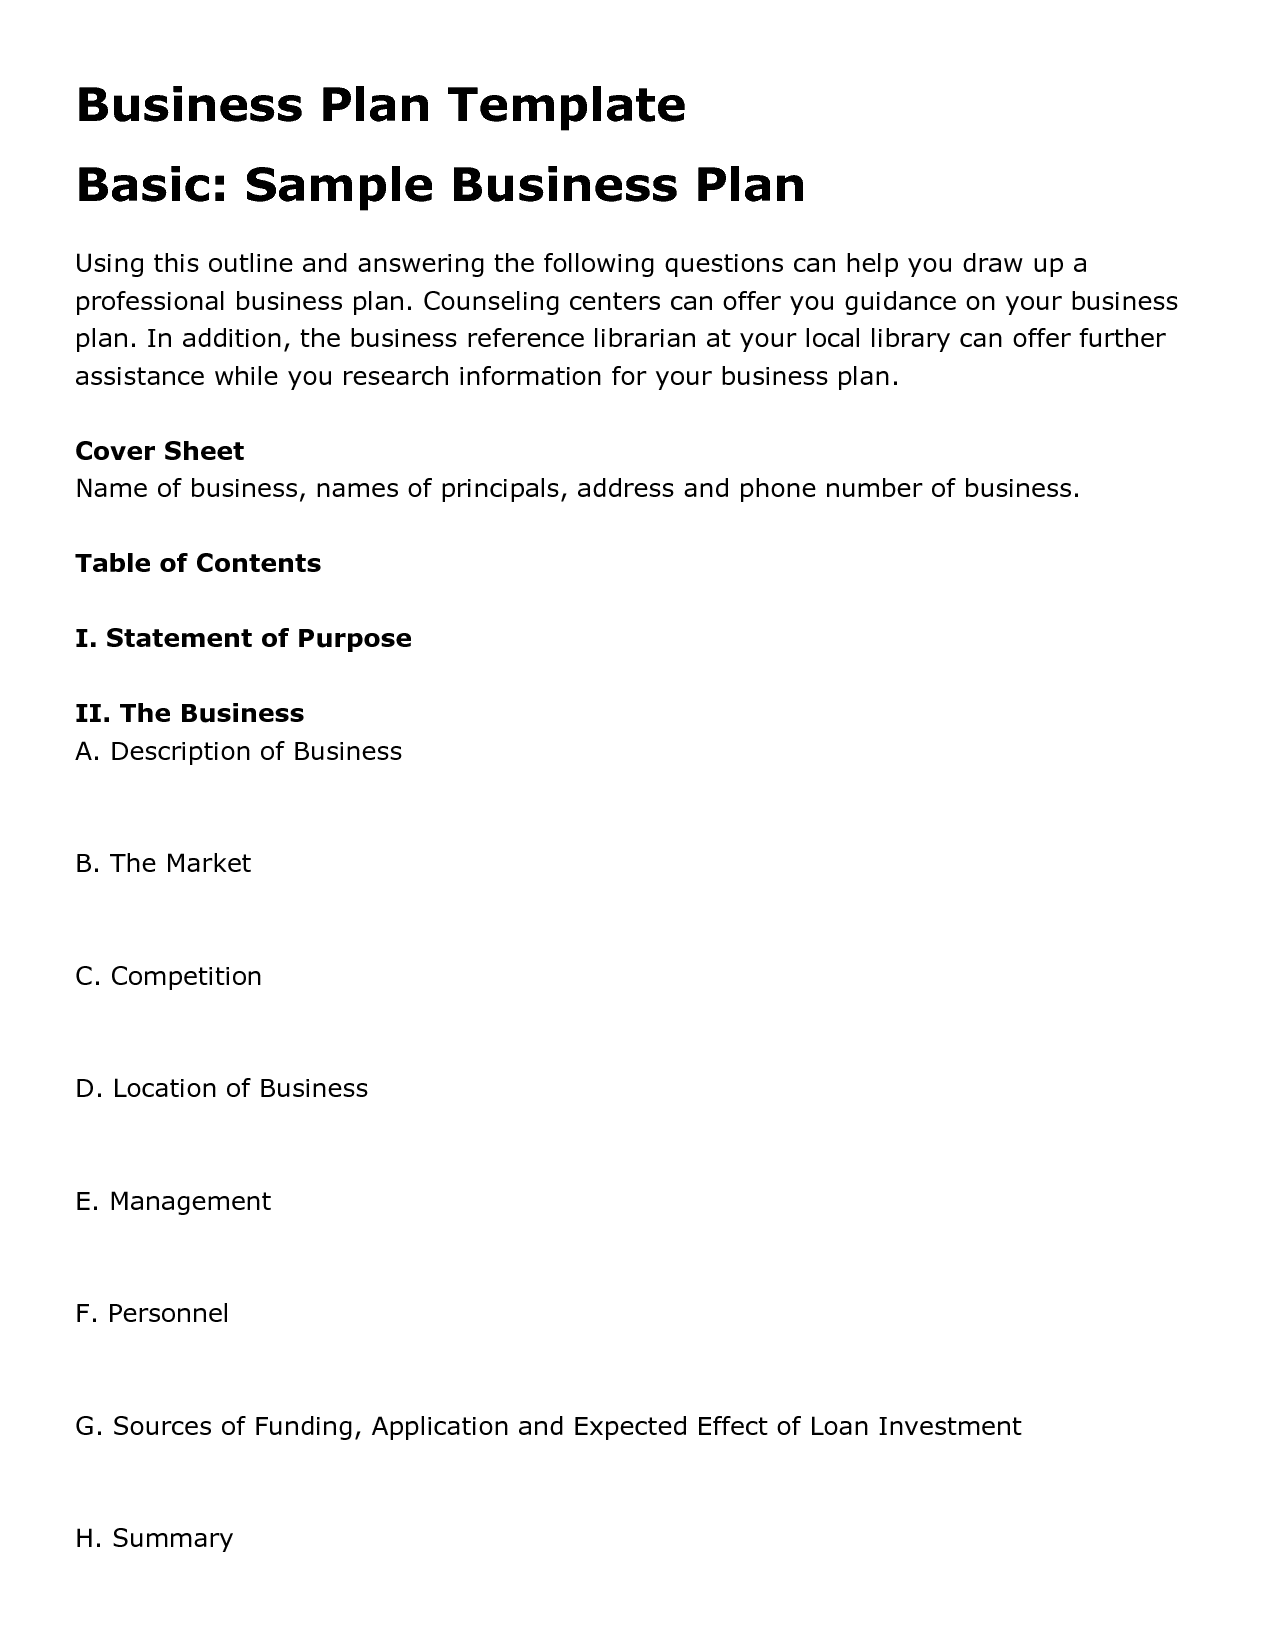 Design and development business plan sample